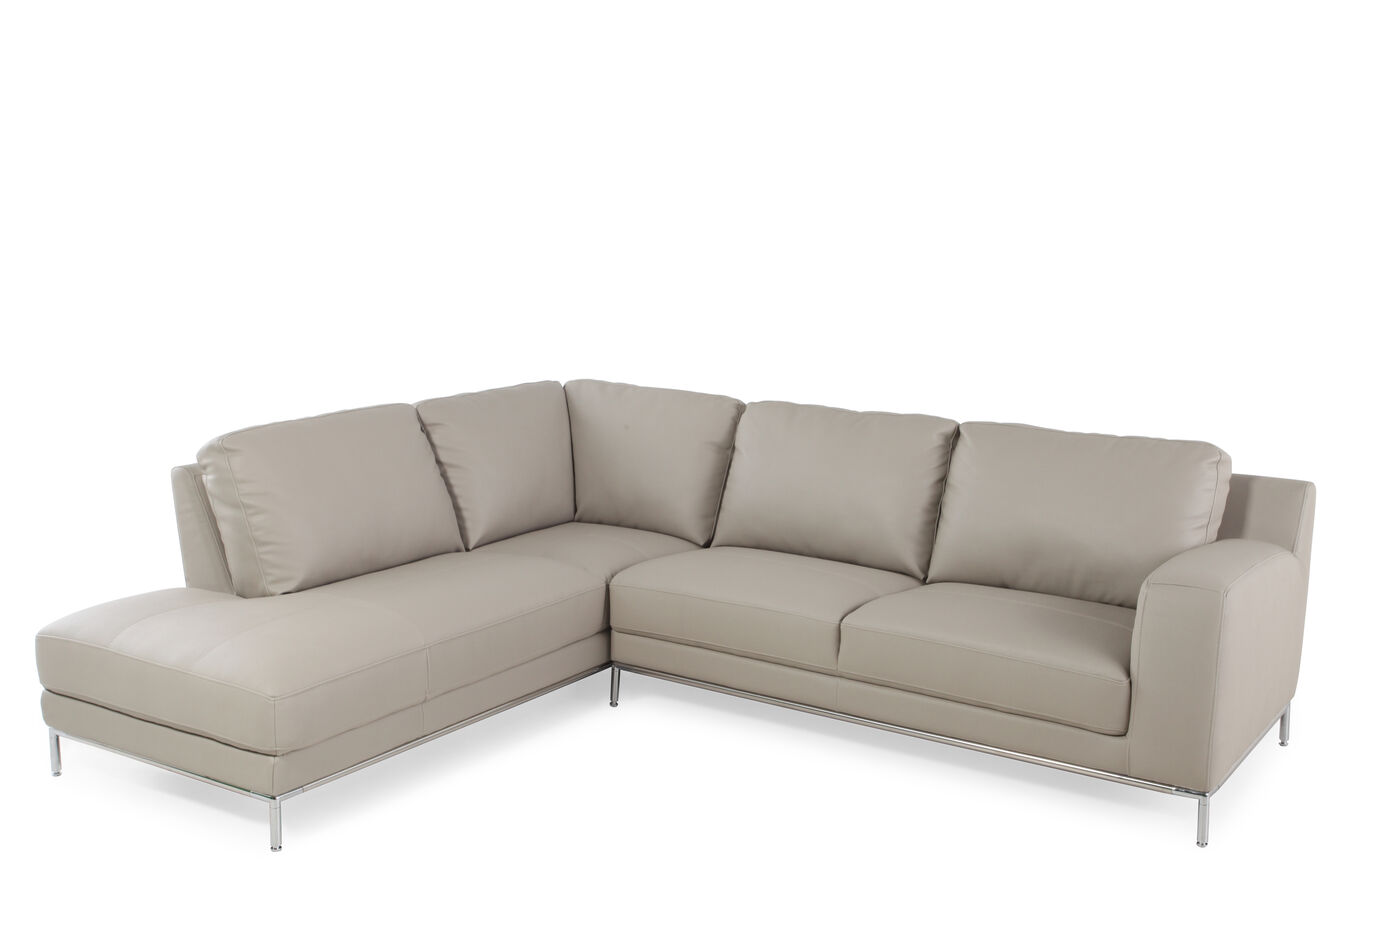 Two piece transitional 108quot sectional in stone mathis for Two piece sectional sofa sale